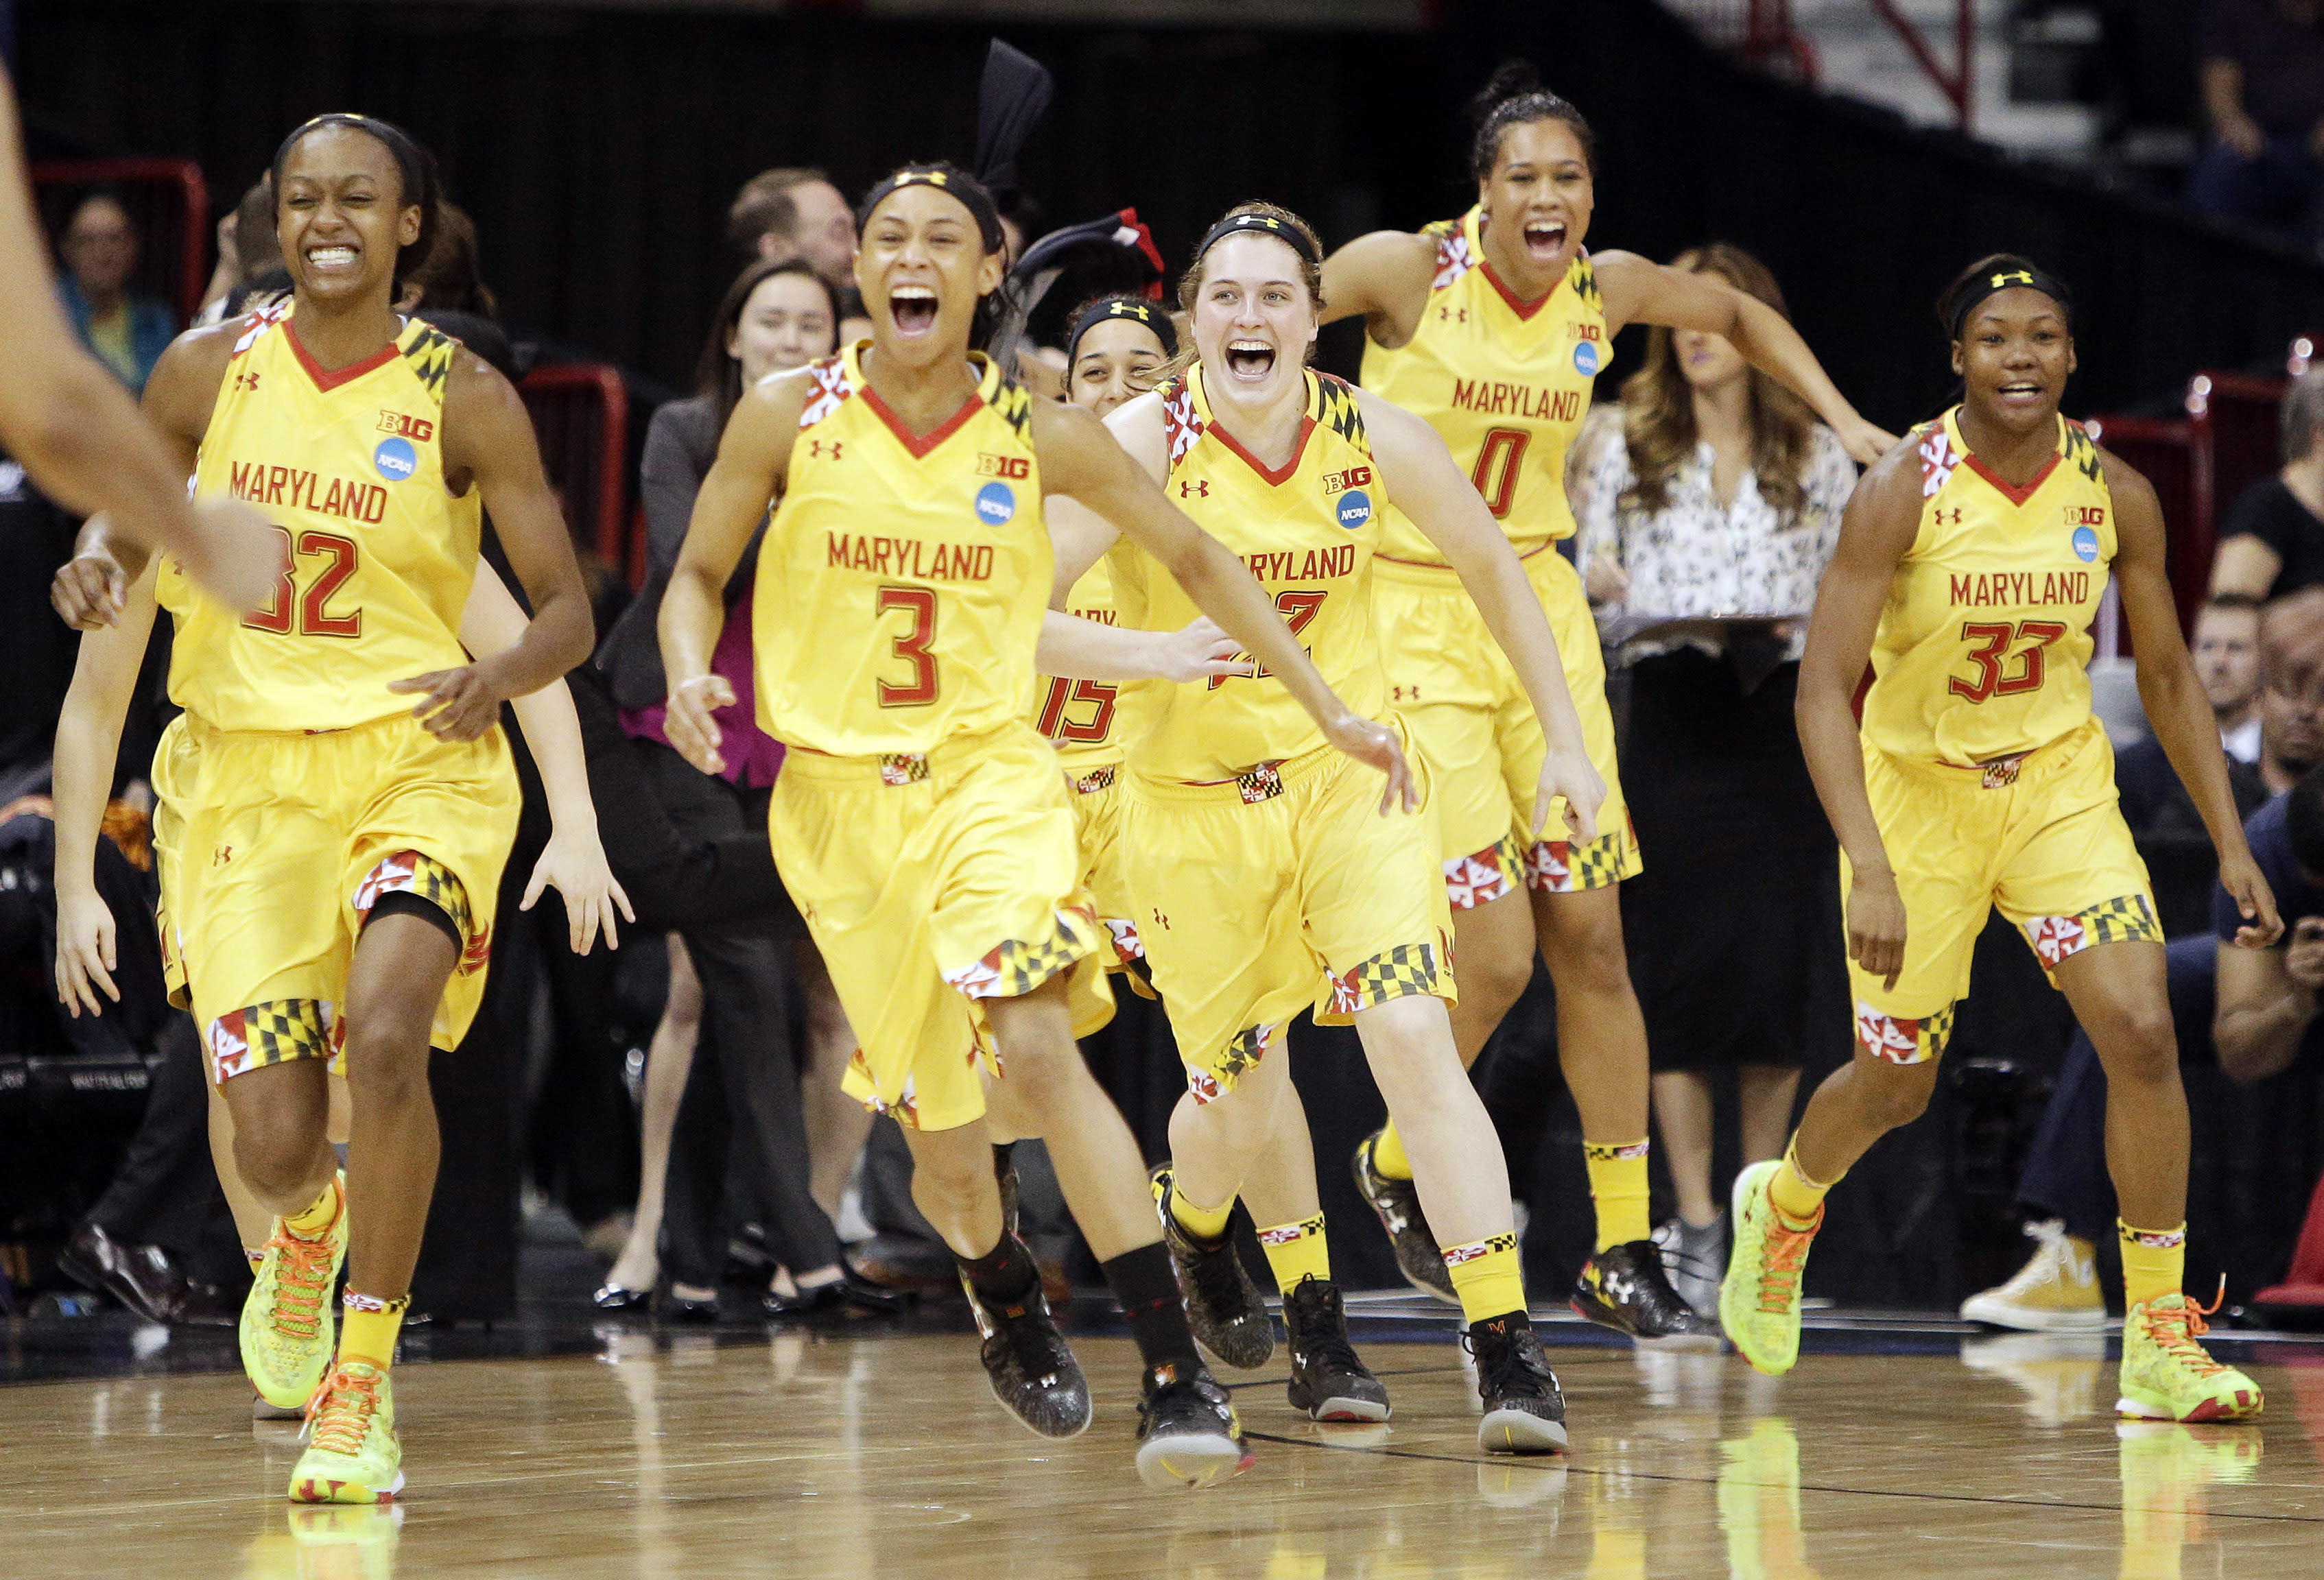 Maryland uses versatility to earn return trip to Final Four